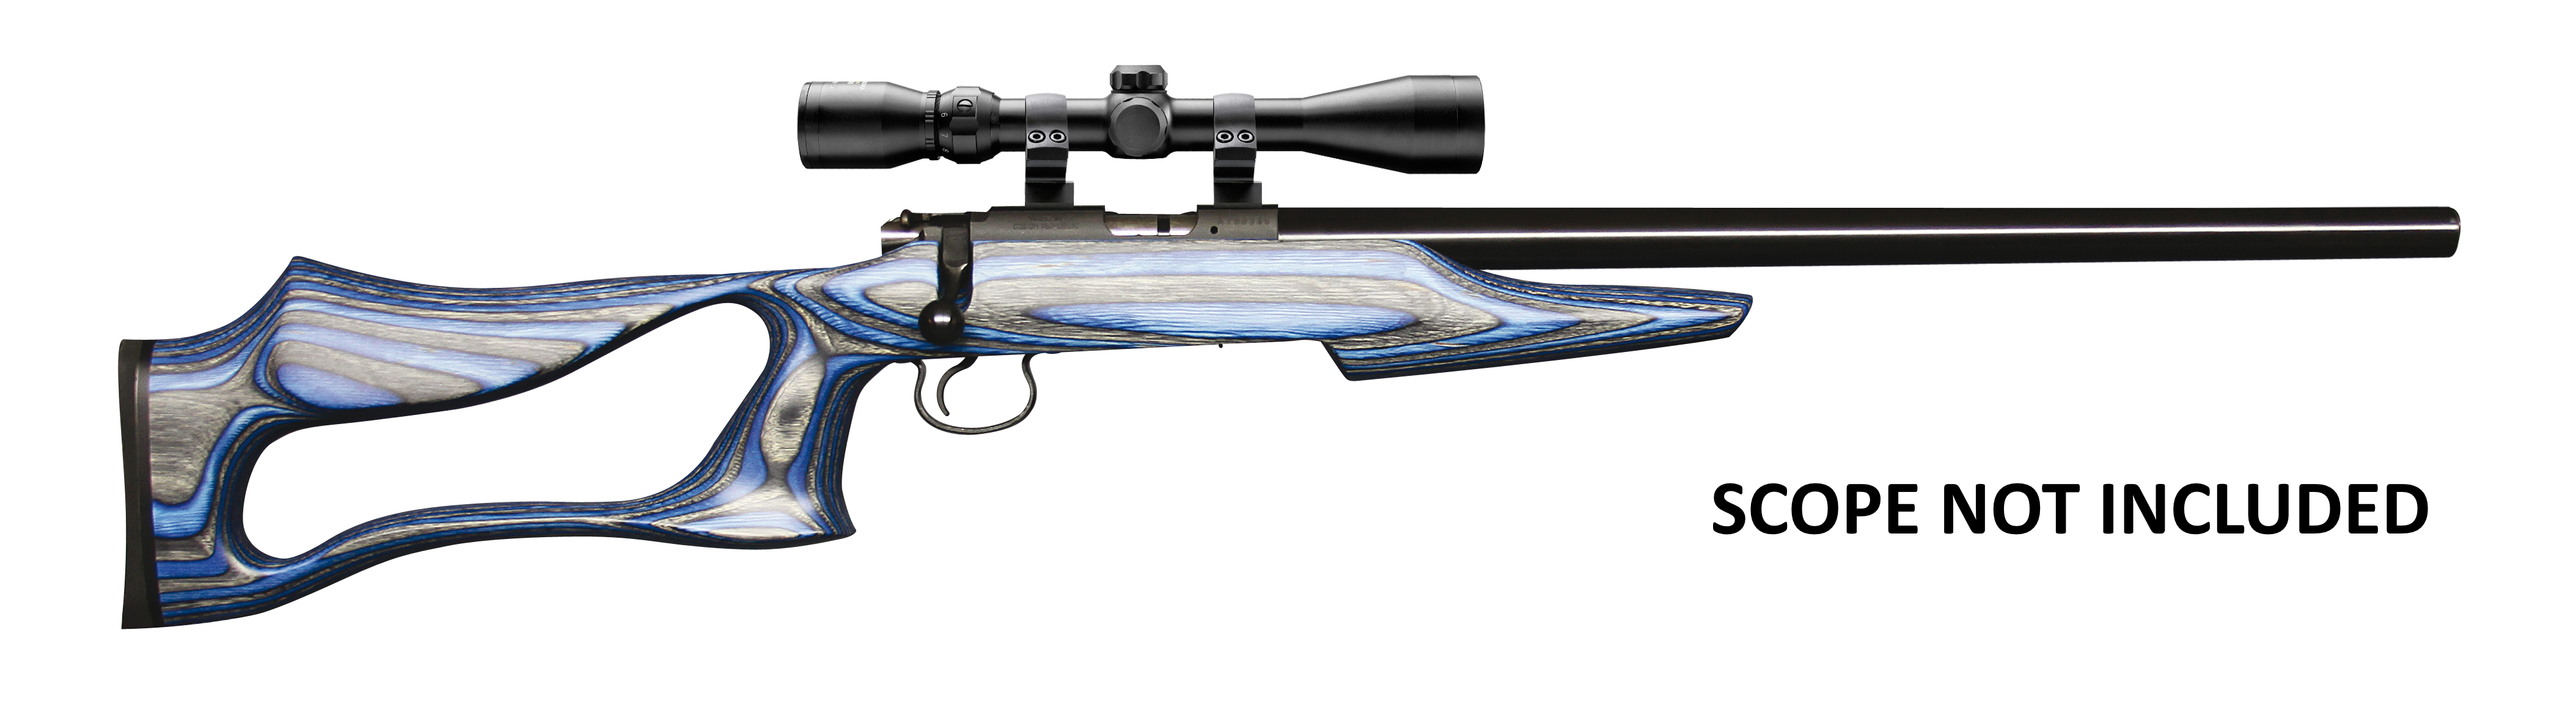 CZ 455 Evolution Varmint Laminate